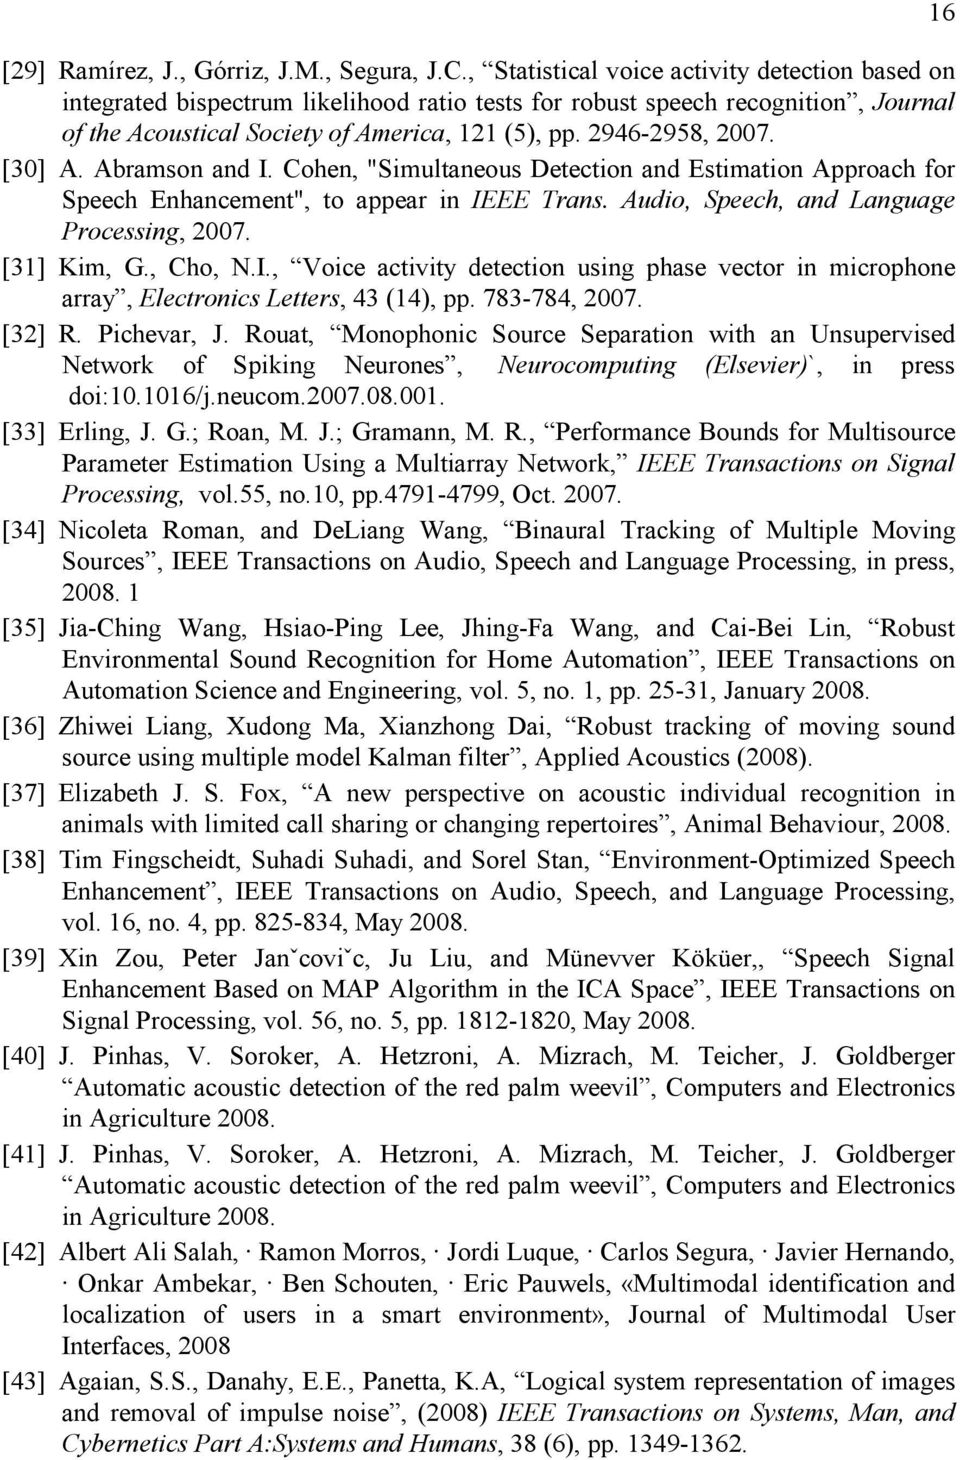 "[30] A. Abramson and I. Cohen, ""Simultaneous Detection and Estimation Approach for Speech Enhancement"", to appear in IEEE Trans. Audio, Speech, and Language Processing, 2007. [31] Kim, G., Cho, N.I., Voice activity detection using phase vector in microphone array, Electronics Letters, 43 (14), pp."